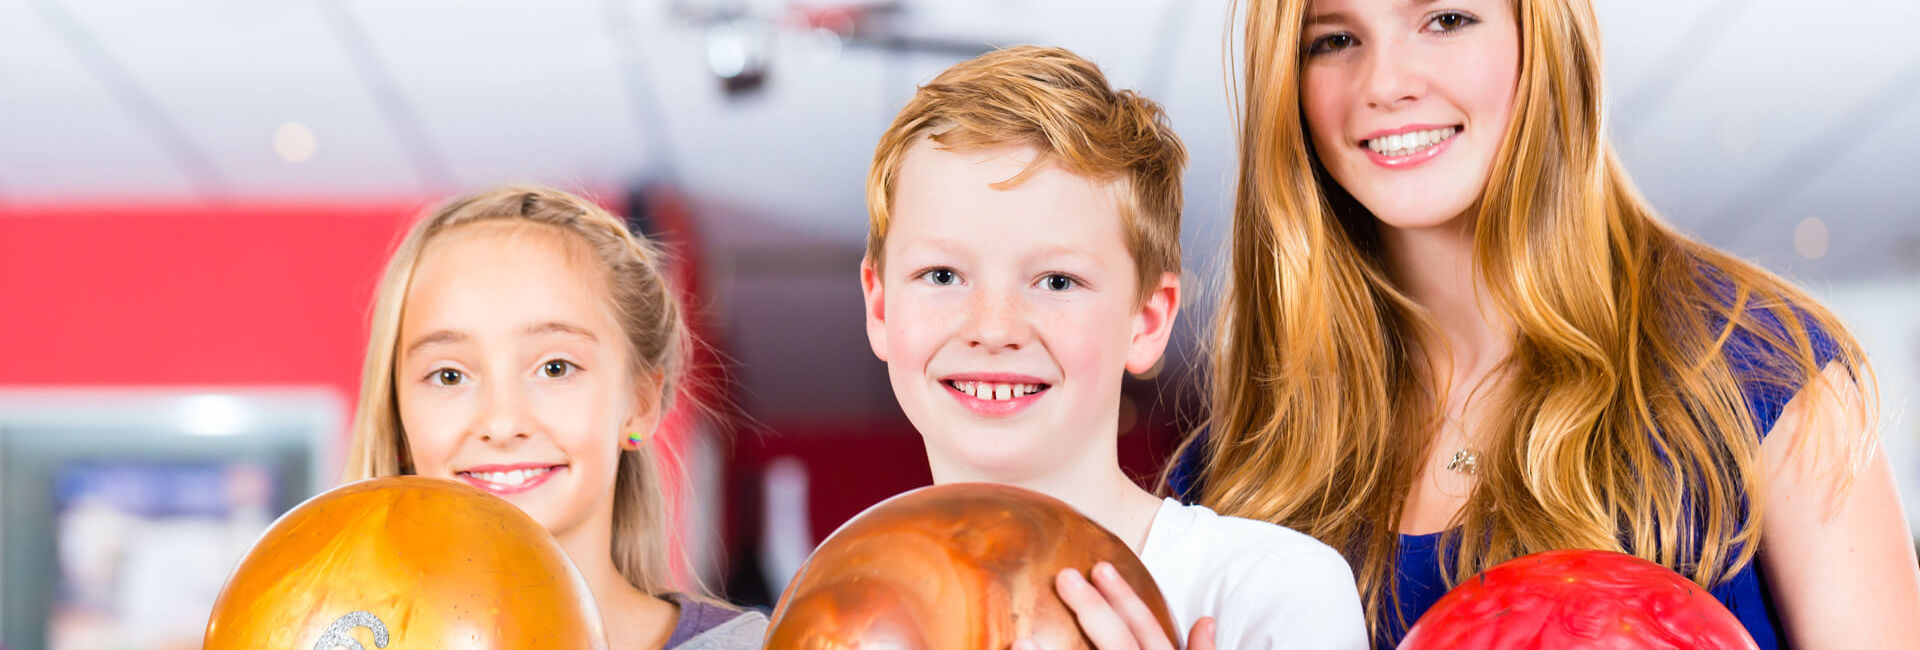 Children and teenager play bowling